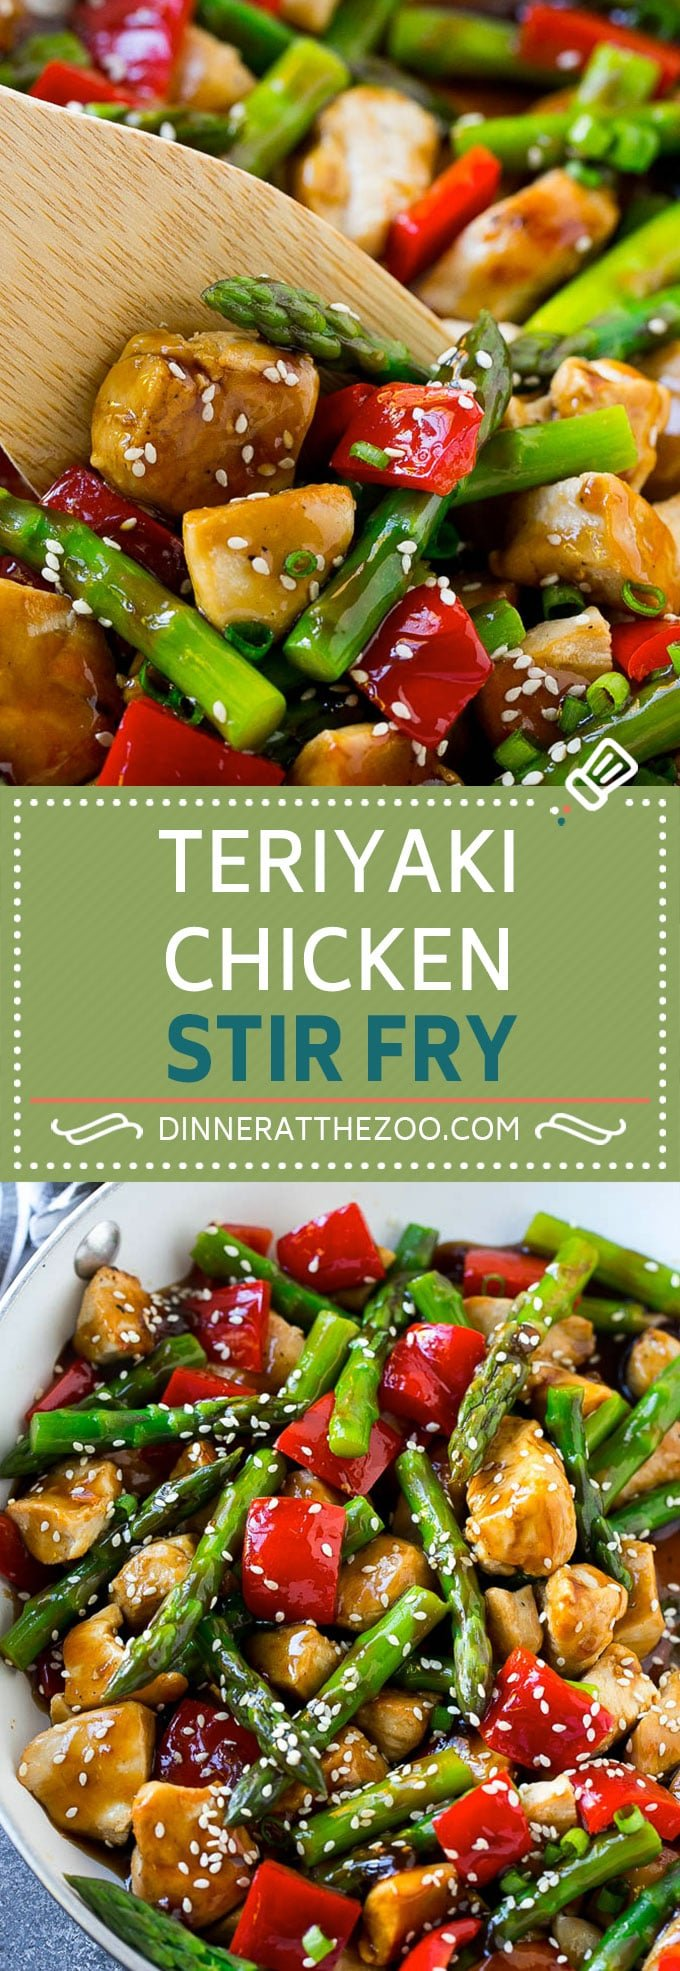 Teriyaki Chicken Stir Fry Recipe | Chicken Teriyaki | Chicken Stir Fry | Healthy Chicken Recipe #teriyaki #chicken #stirfry #dinner #dinneratthezoo